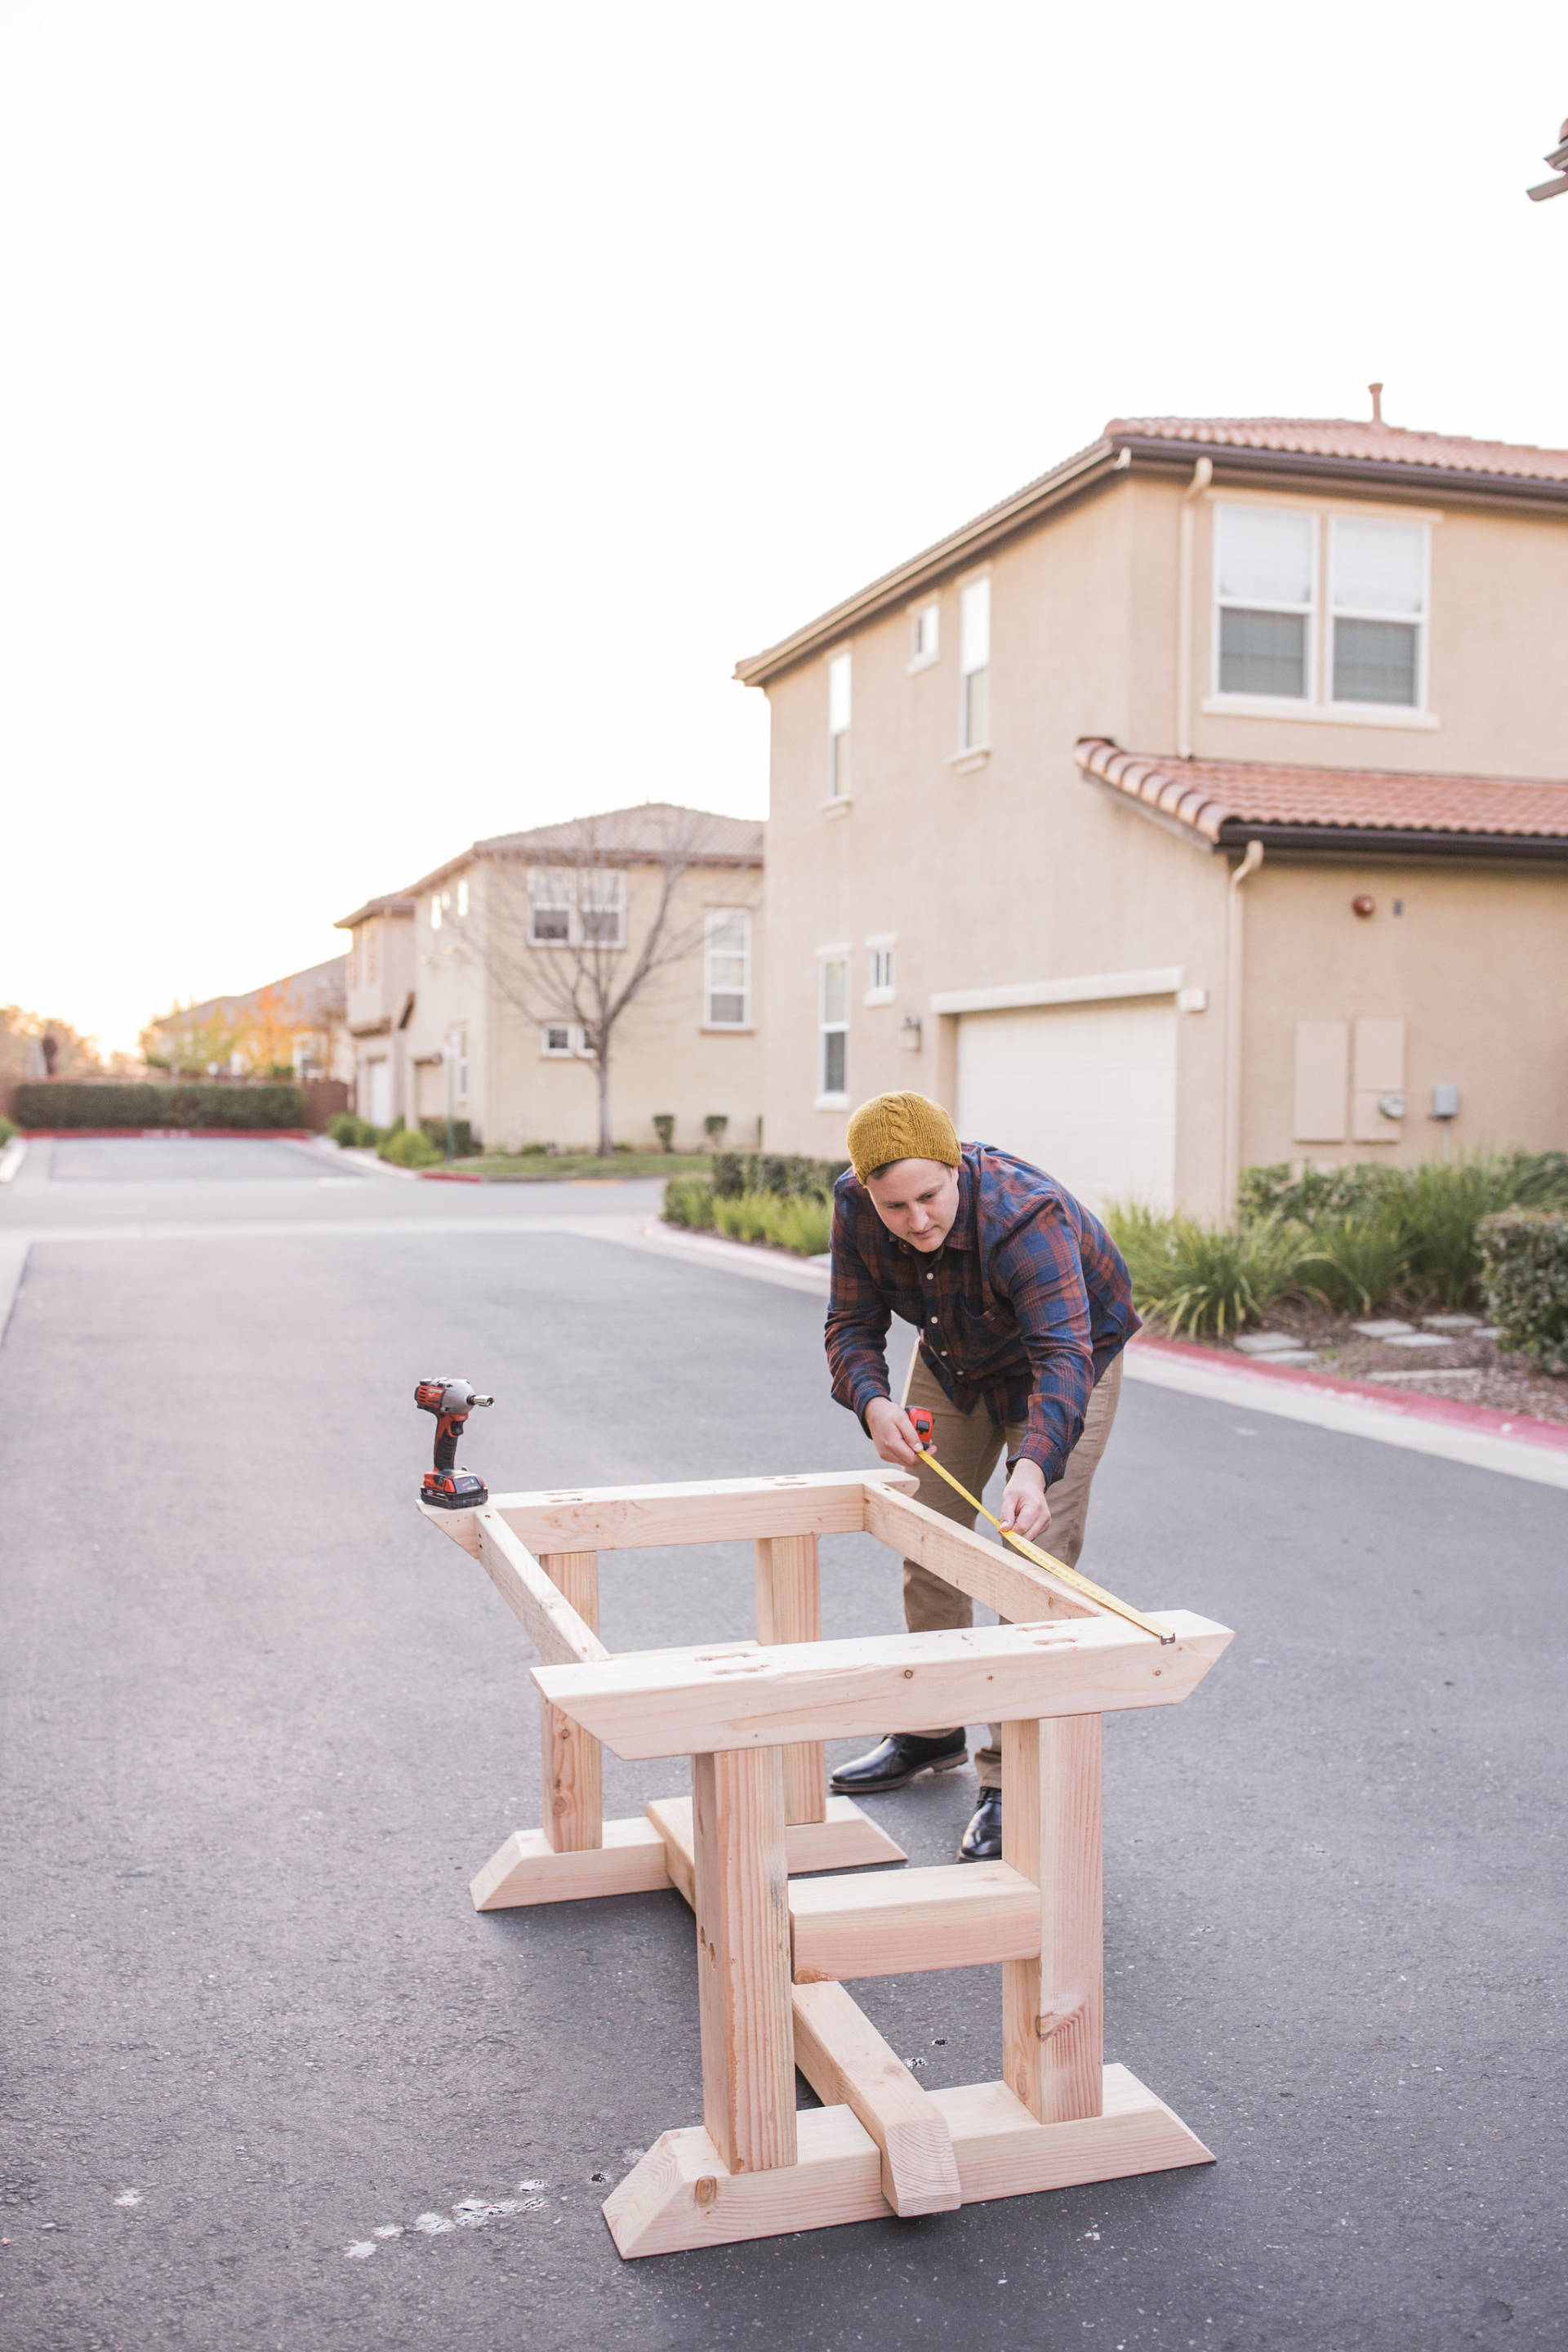 Home Depot: Building a barn style table with a simple plan and user friendly tools from Home Depot. If I can do this, so can you!